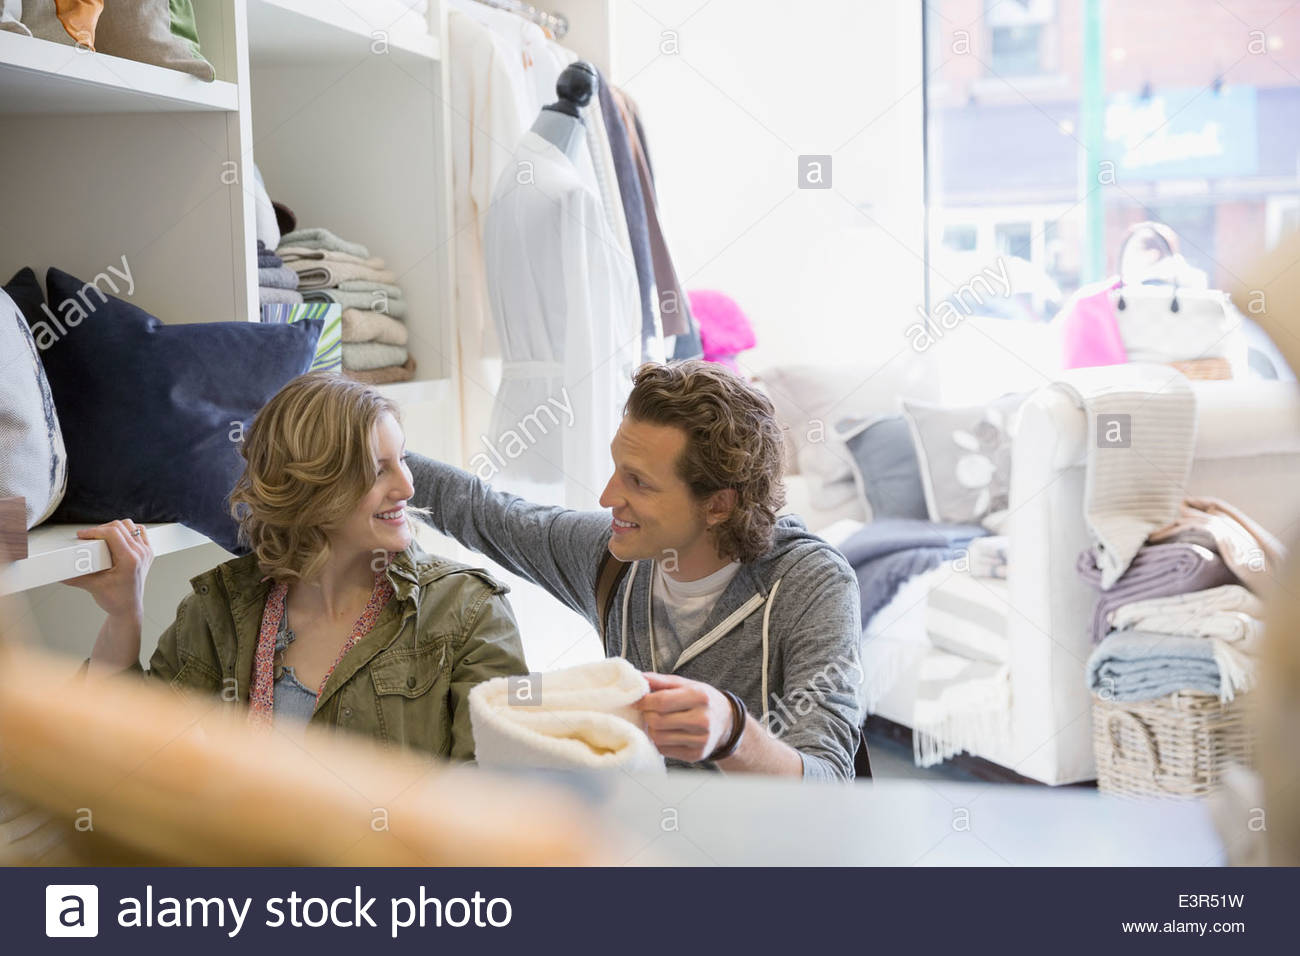 Couple looking at towels in shop - Stock Image